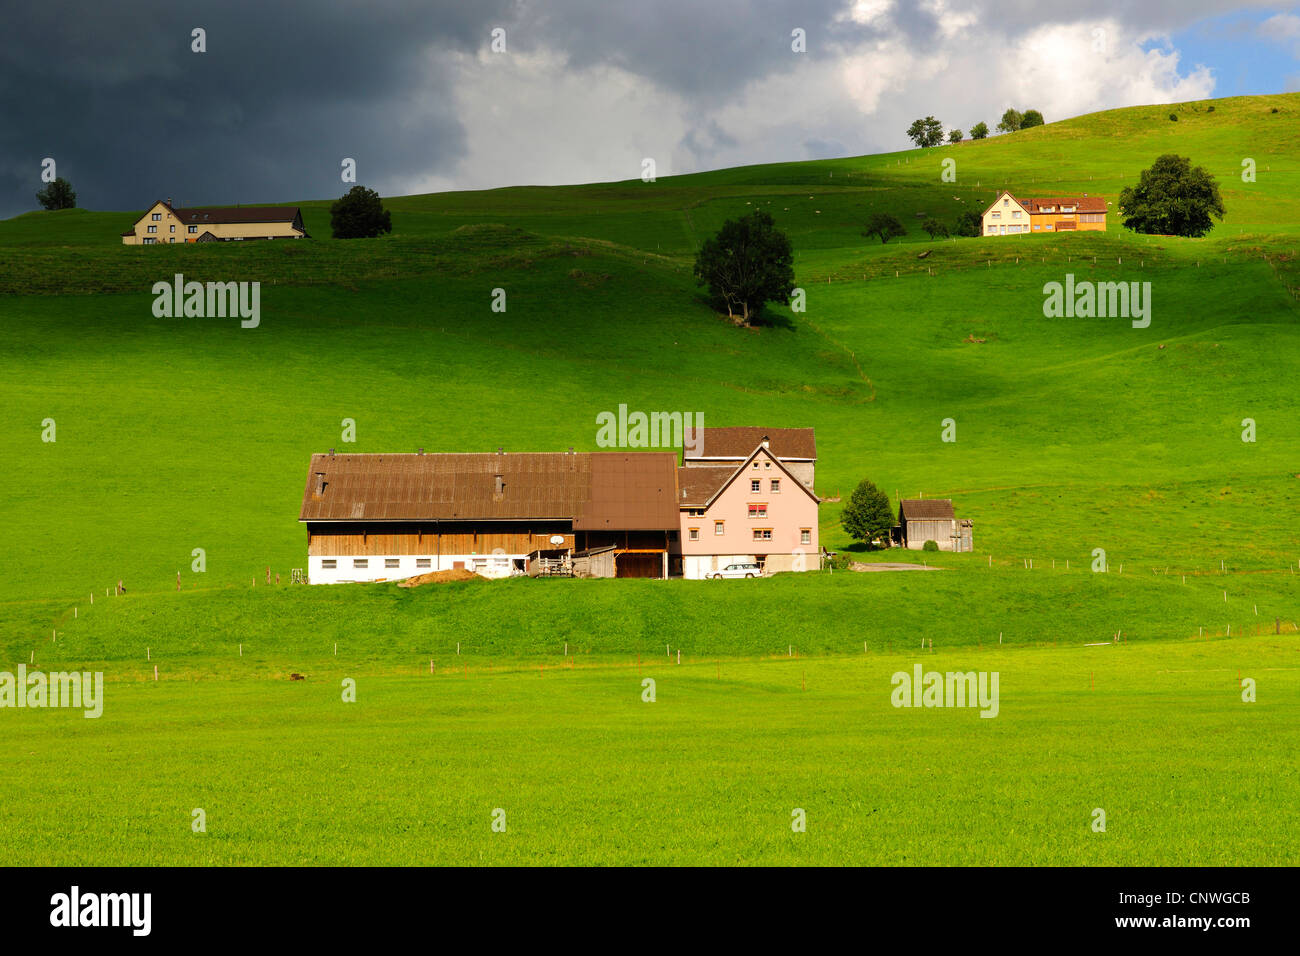 farmhouses and green pastures, Switzerland, Kanton Appenzell - Stock Image